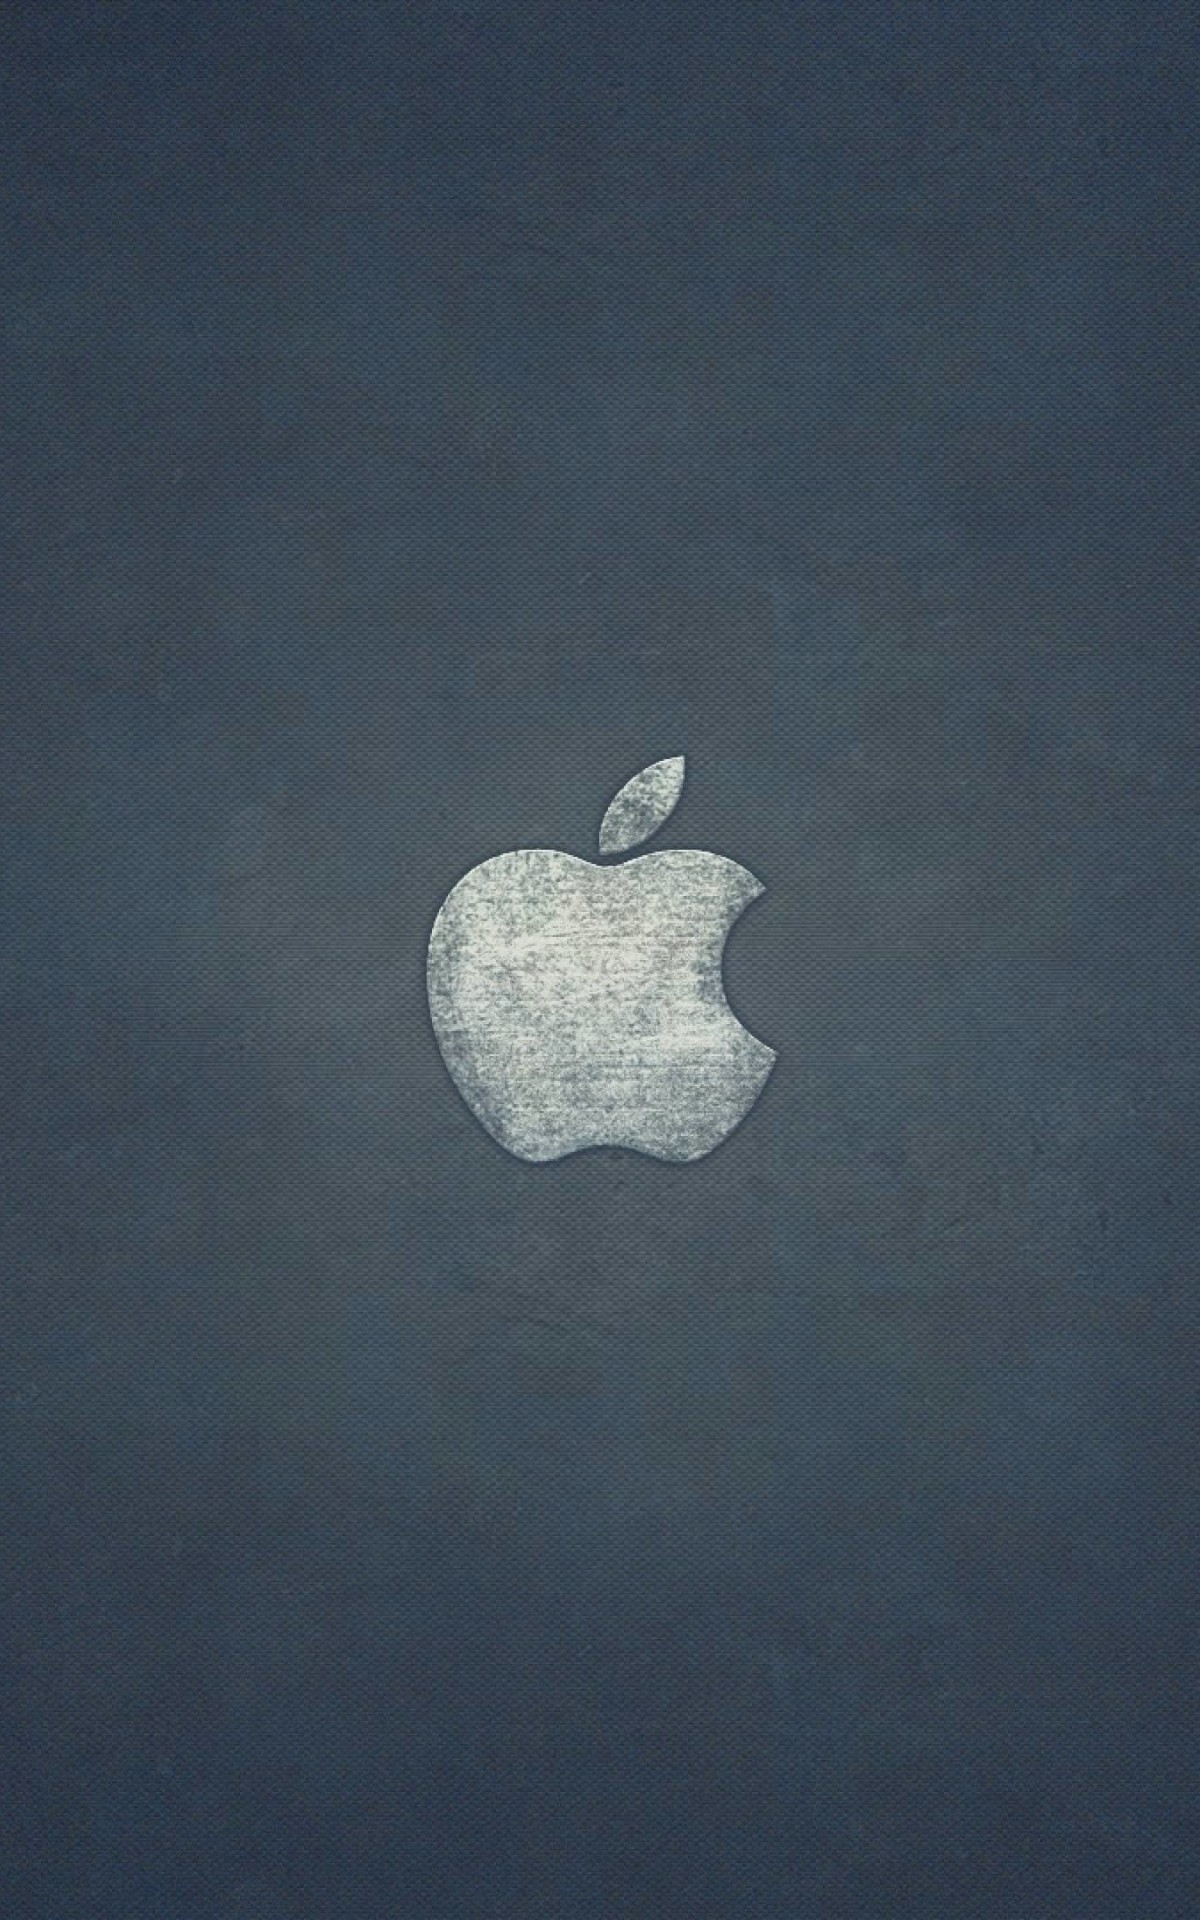 Grunge Apple Logo Wallpaper for Amazon Kindle Fire HDX